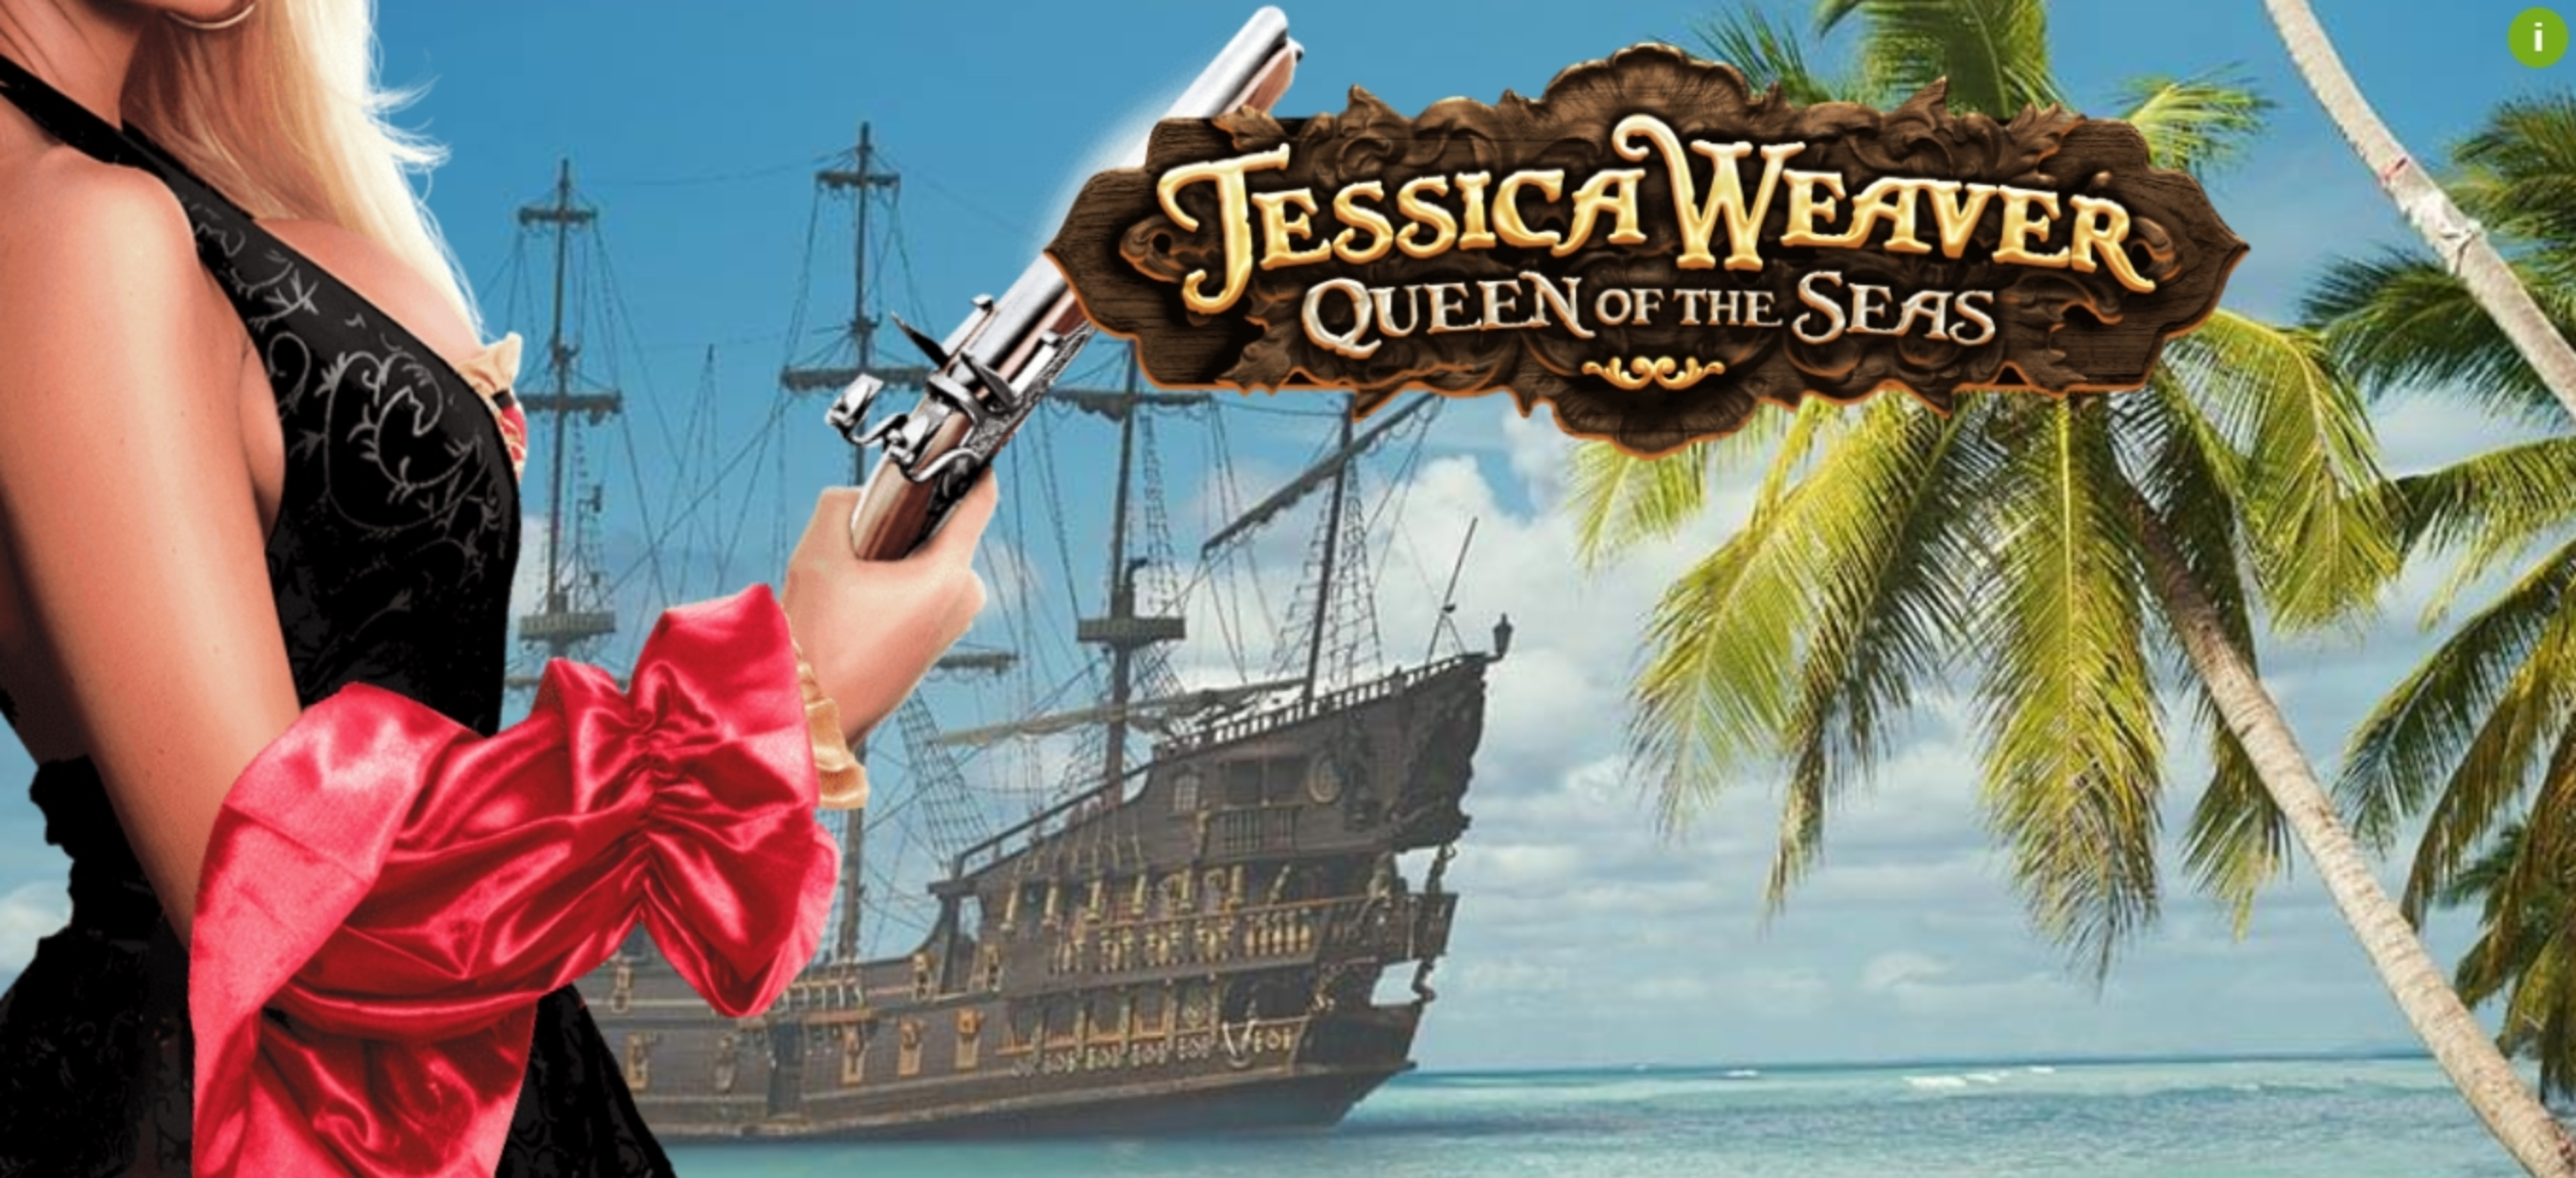 Jessica Weaver Queen of the Seas Online Slot Demo Game by MGA